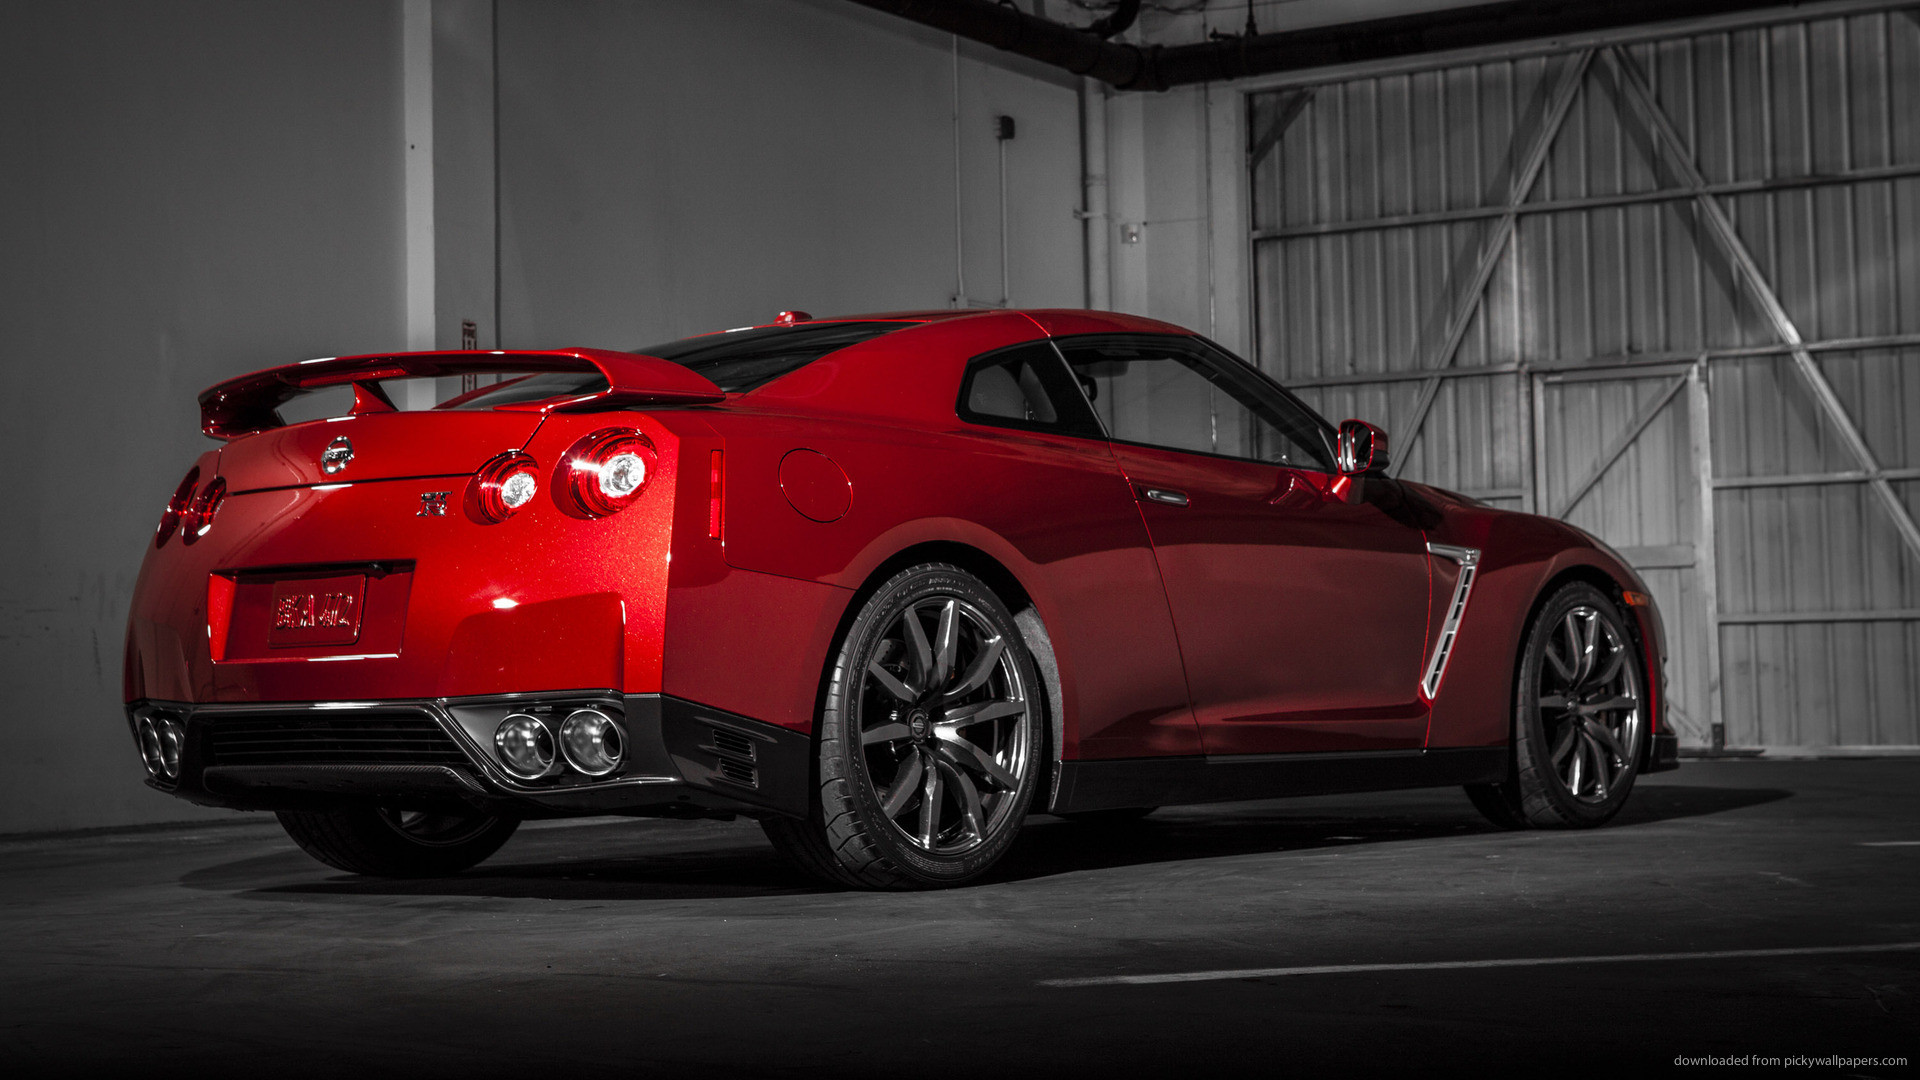 Red Nissan GT-R In The Garage Back for 1920×1080